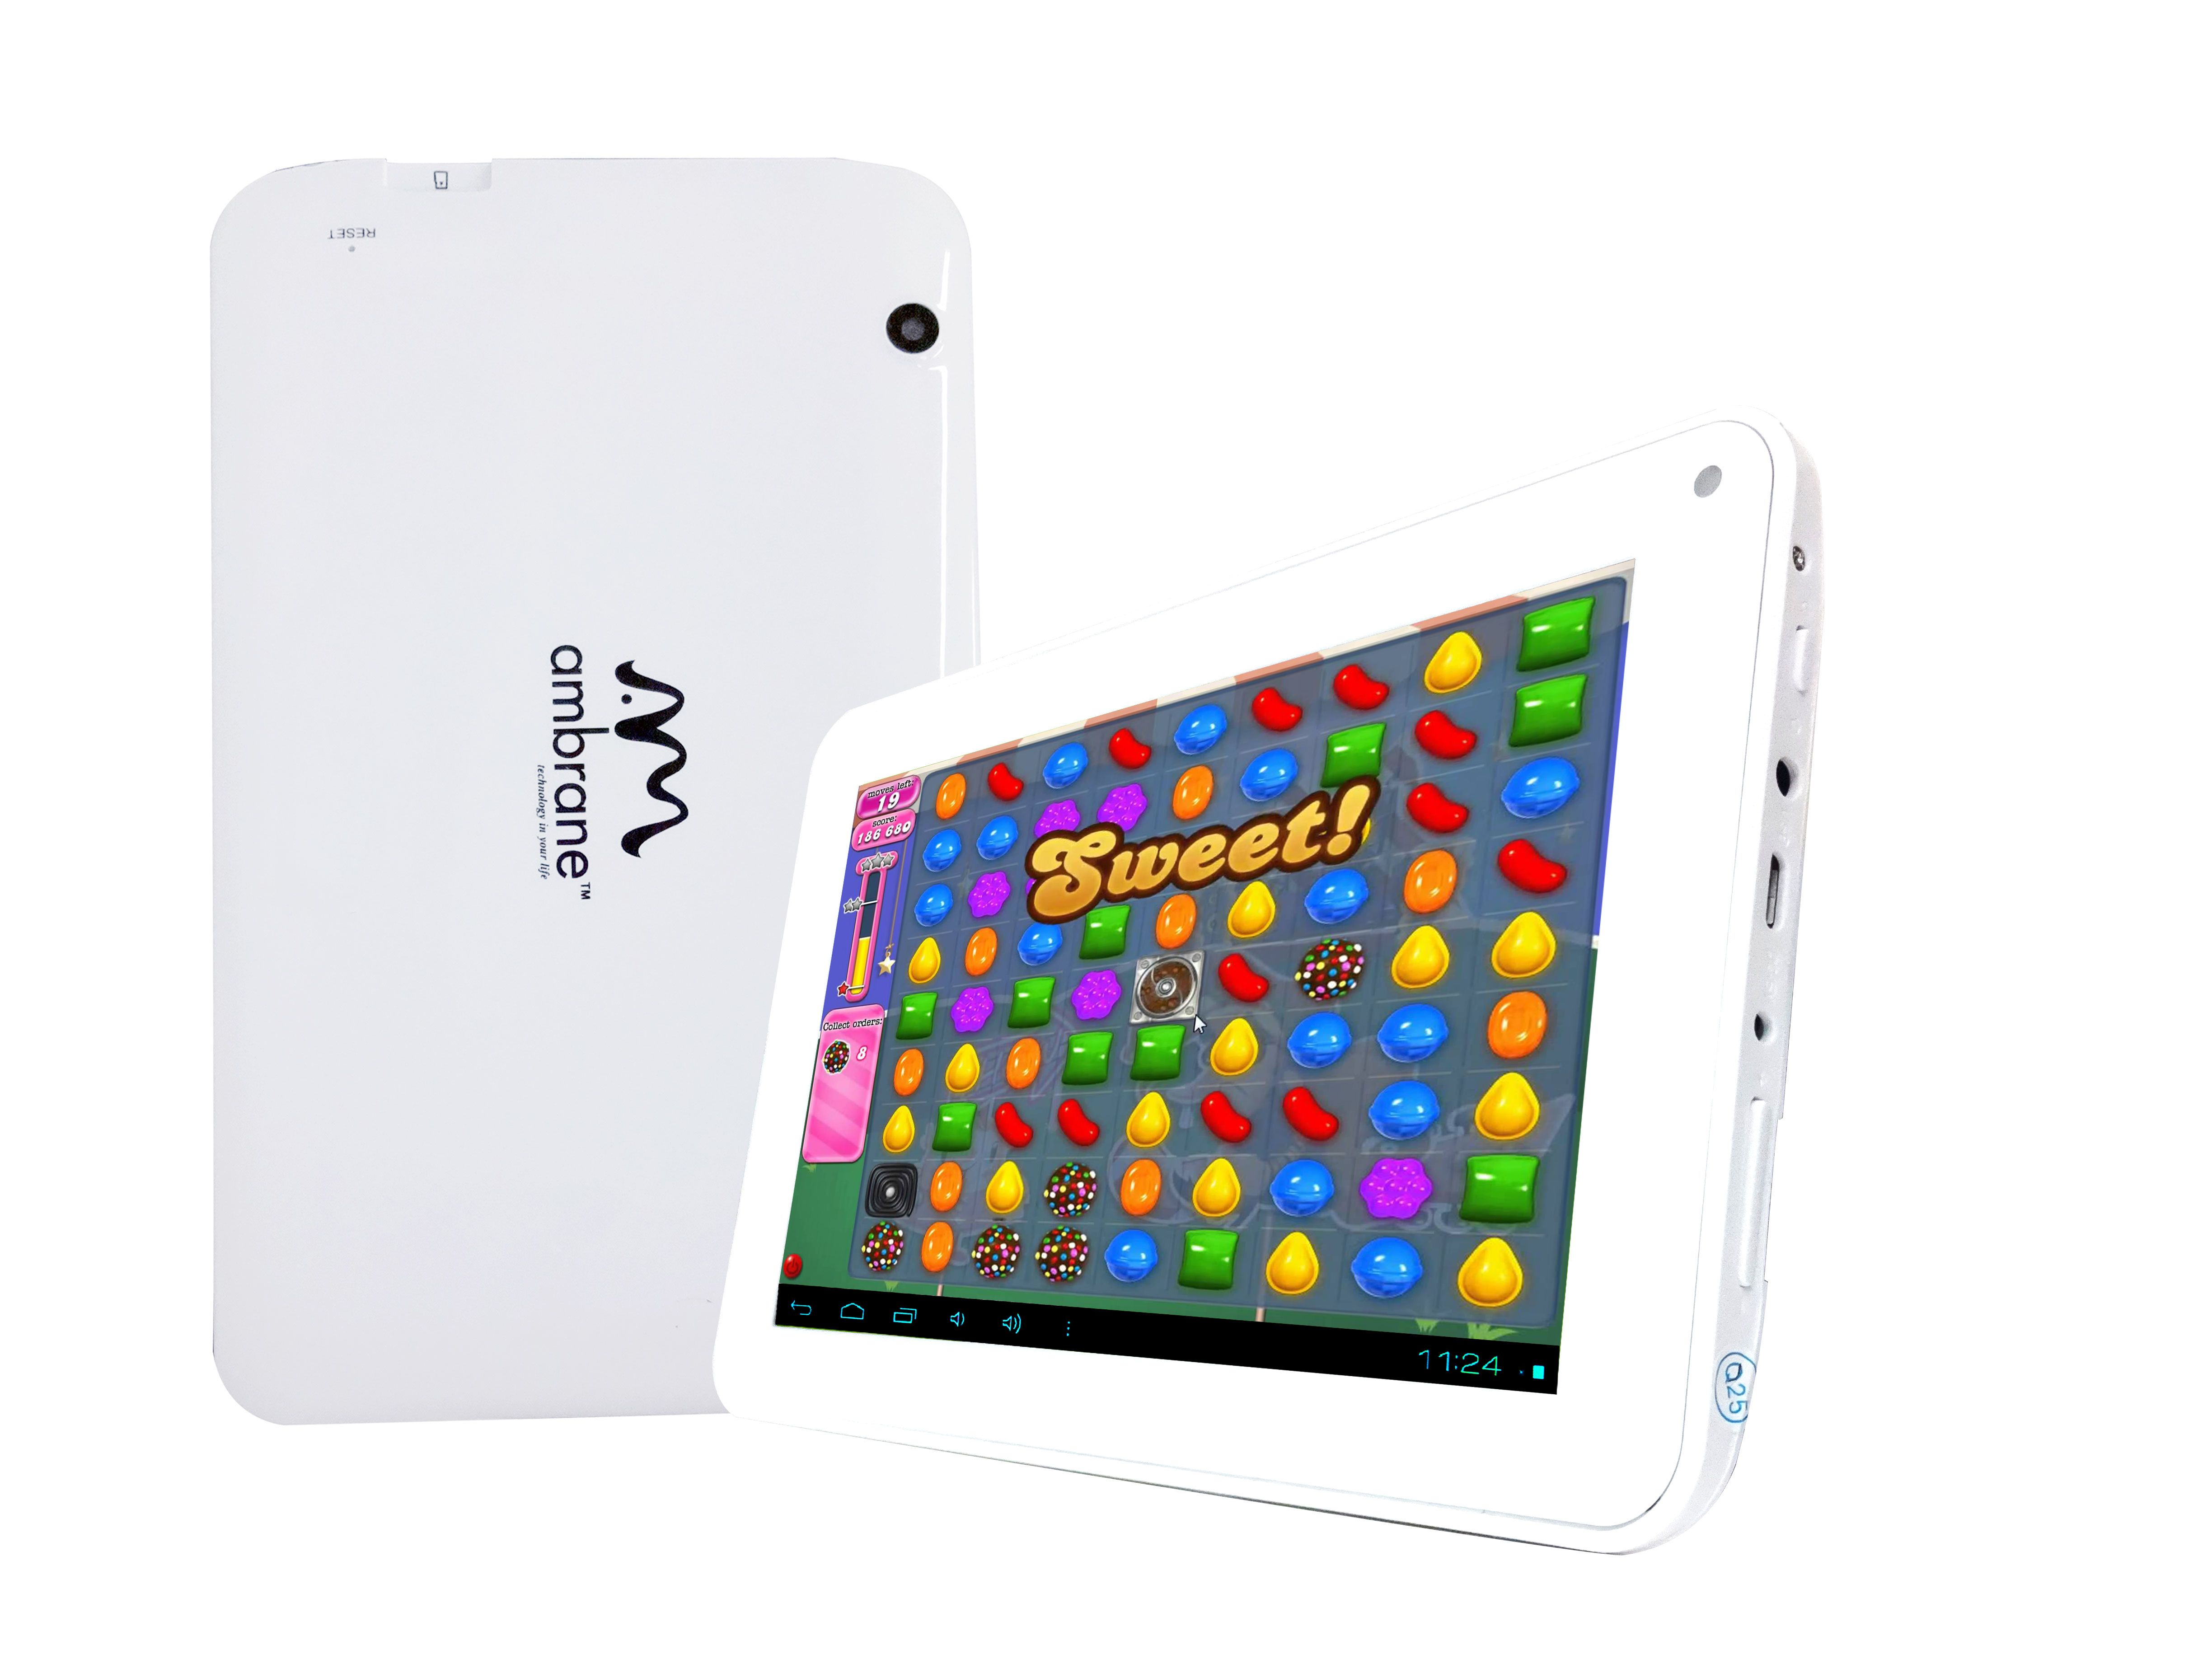 The Ambrane A707 is a budgetspec Dual Core tablet with a